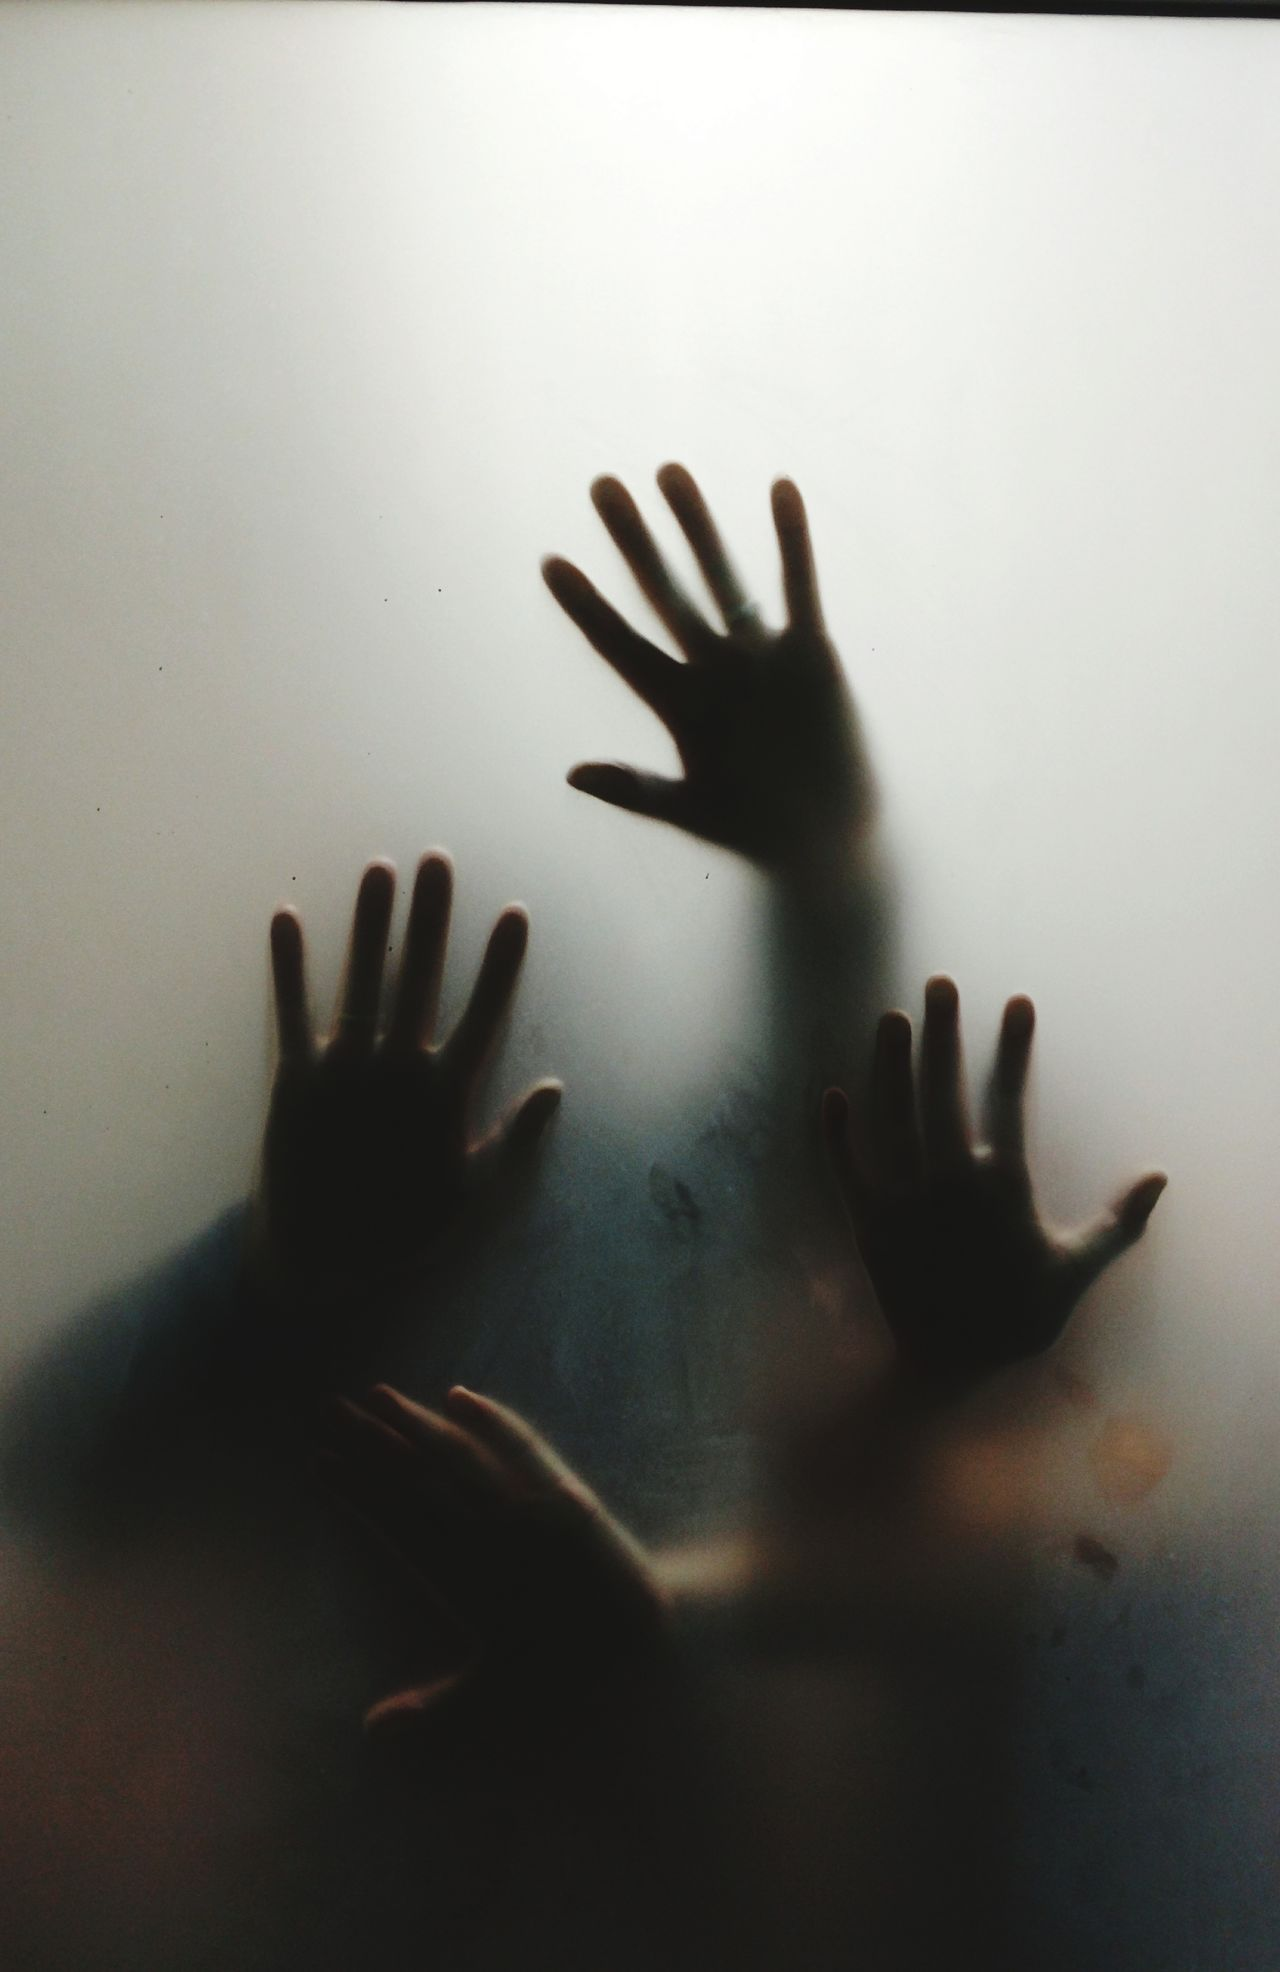 Horror Terrified Human Hand Spooky Horror Fear Silhouette Transparent Human Body Part Back Lit Shadow Frosted Glass Violence Trapped Alien Zombie Window Shock Ghost Handprint Touching